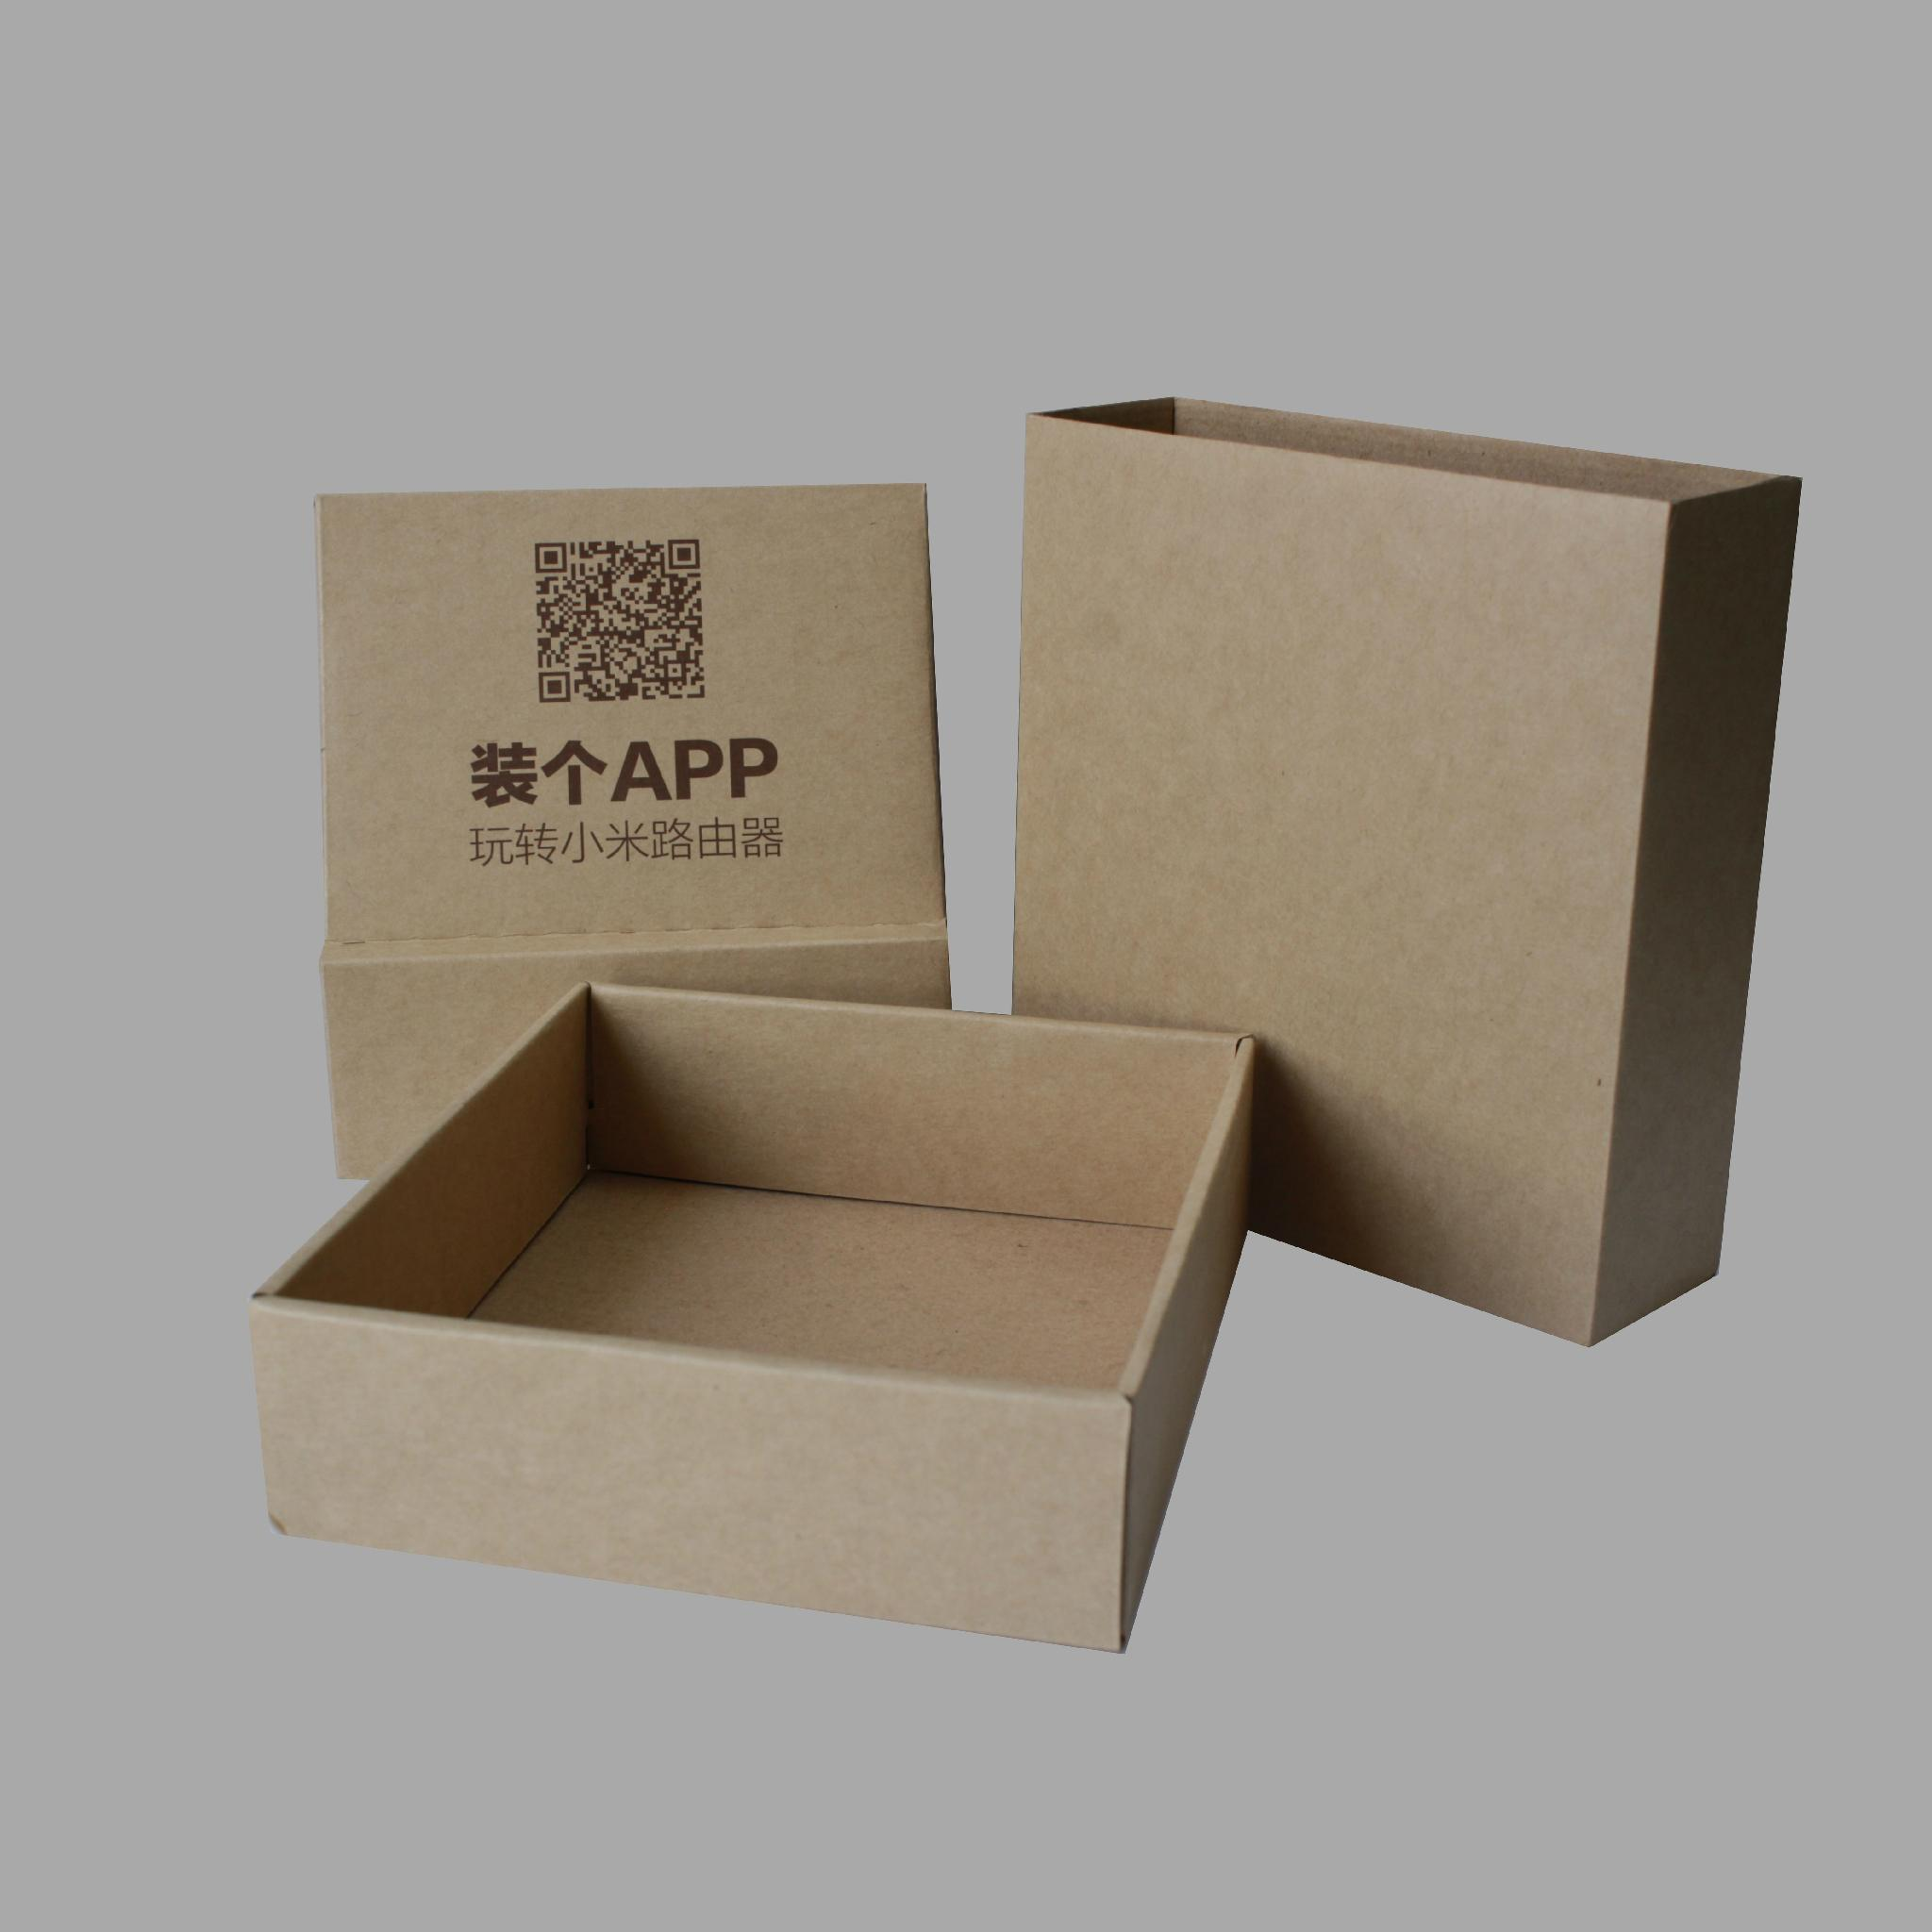 custom papers for shipping Manufacturer of custom paper tube packaging used by global consumer products companies for candles, cosmetics, apparel, coffee and tea, and other luxury goods.